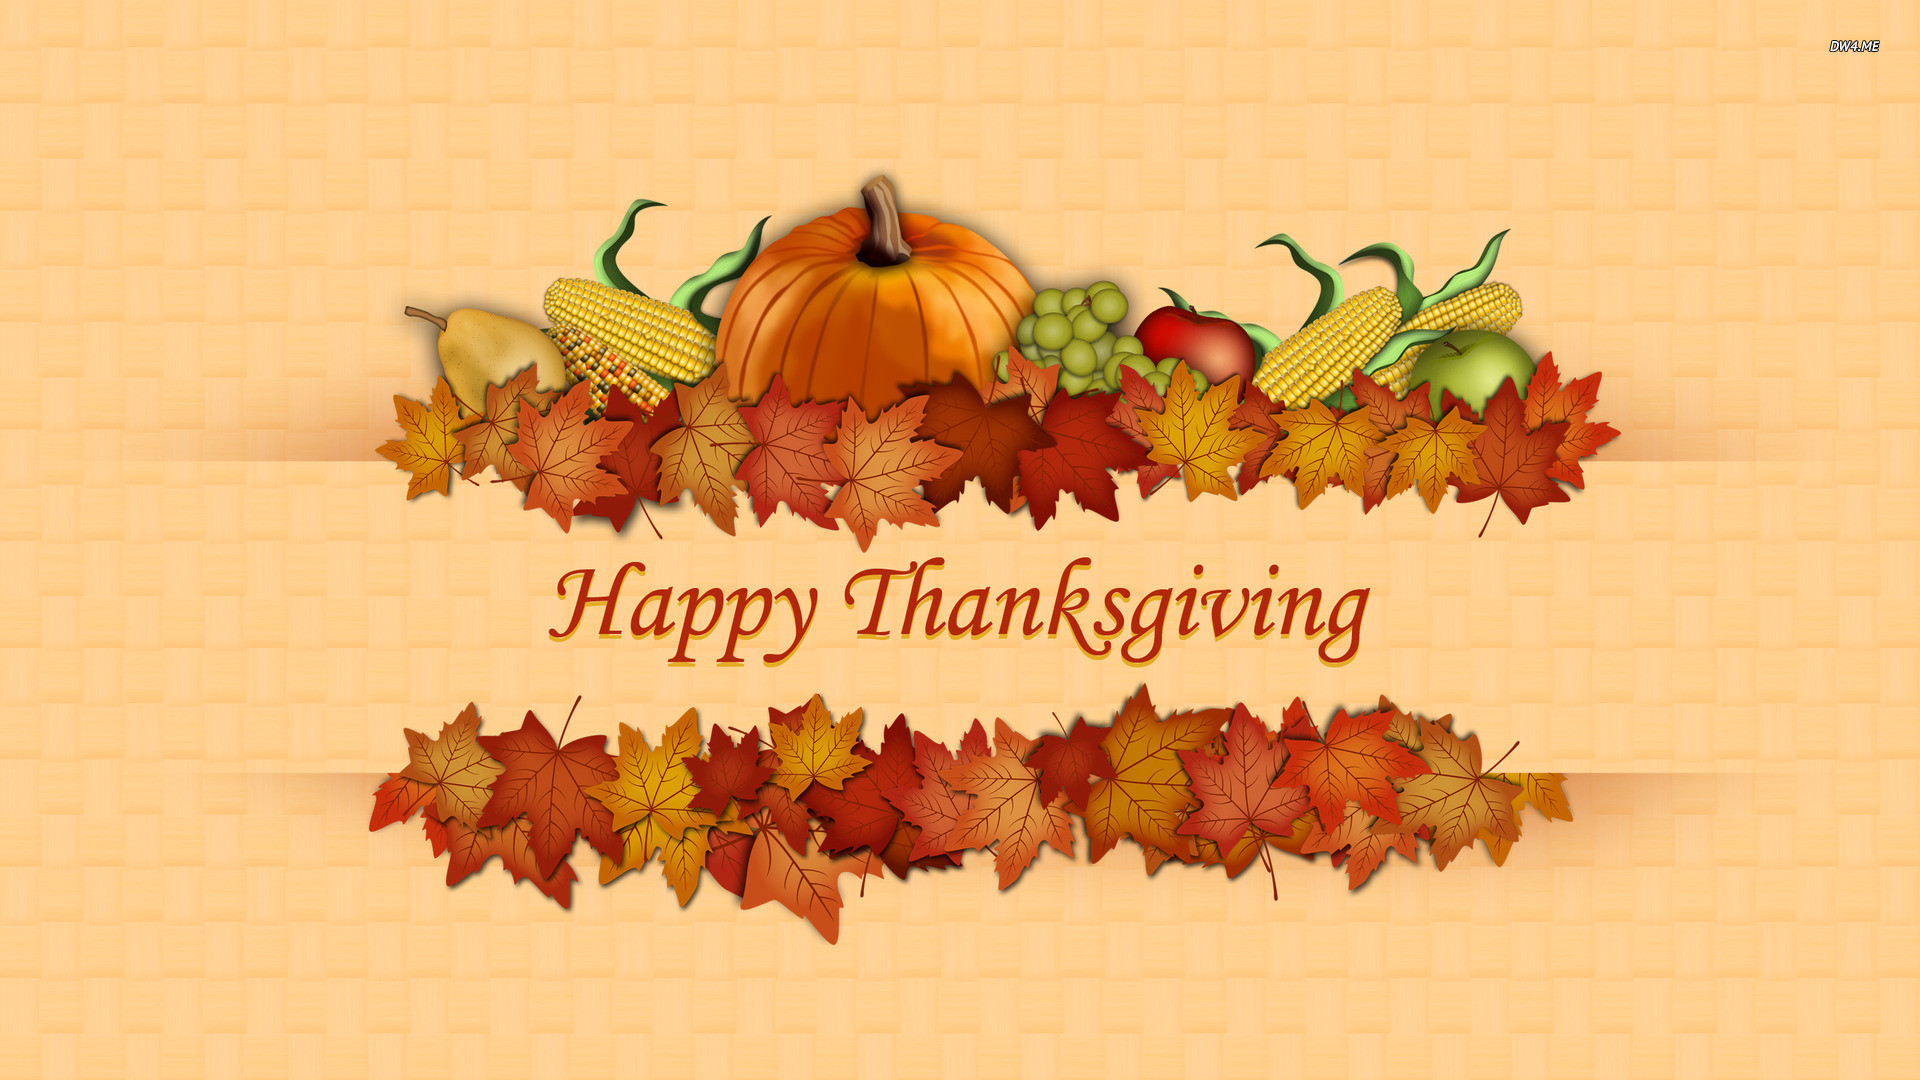 1920x1080 Free Thanksgiving Desktop Backgrounds | Free Happy Thanksgiving Desktop  Wallpaper